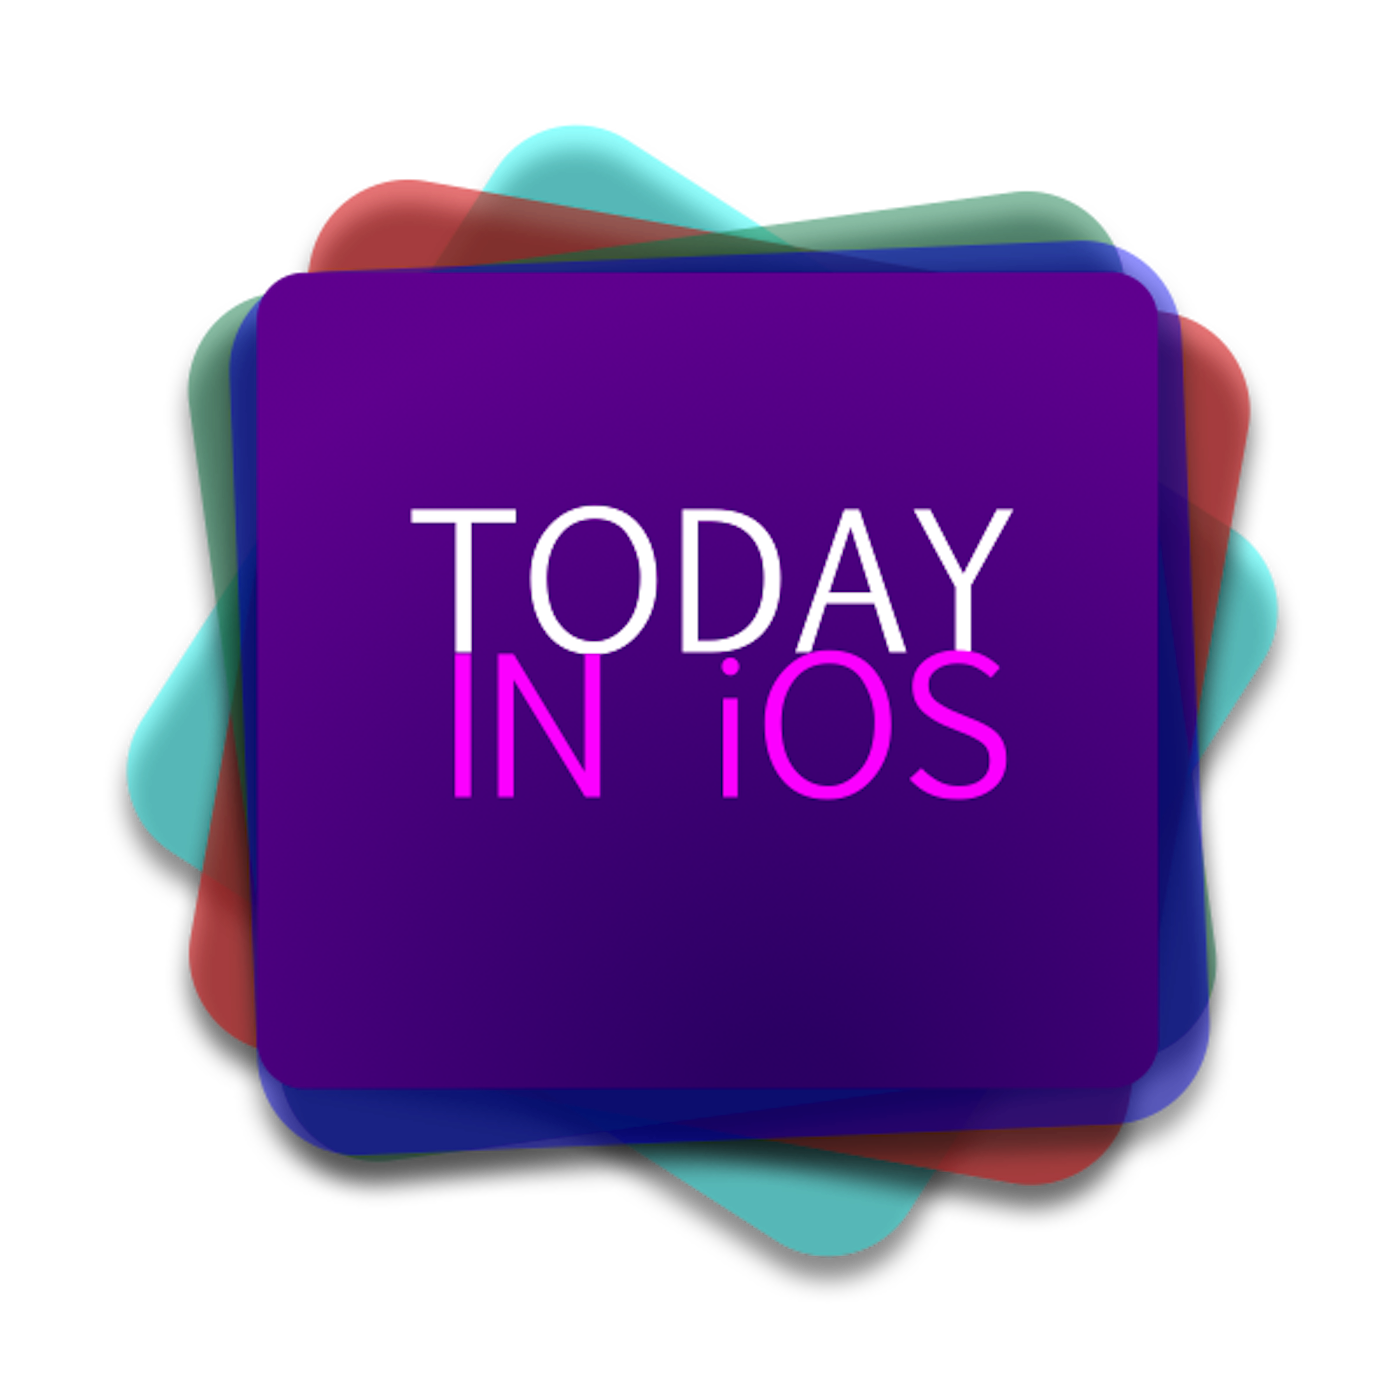 Today in iOS Podcast - The Unofficial iOS, iPhone, iPad and iPod Touch News and iPhone Apps Podcast